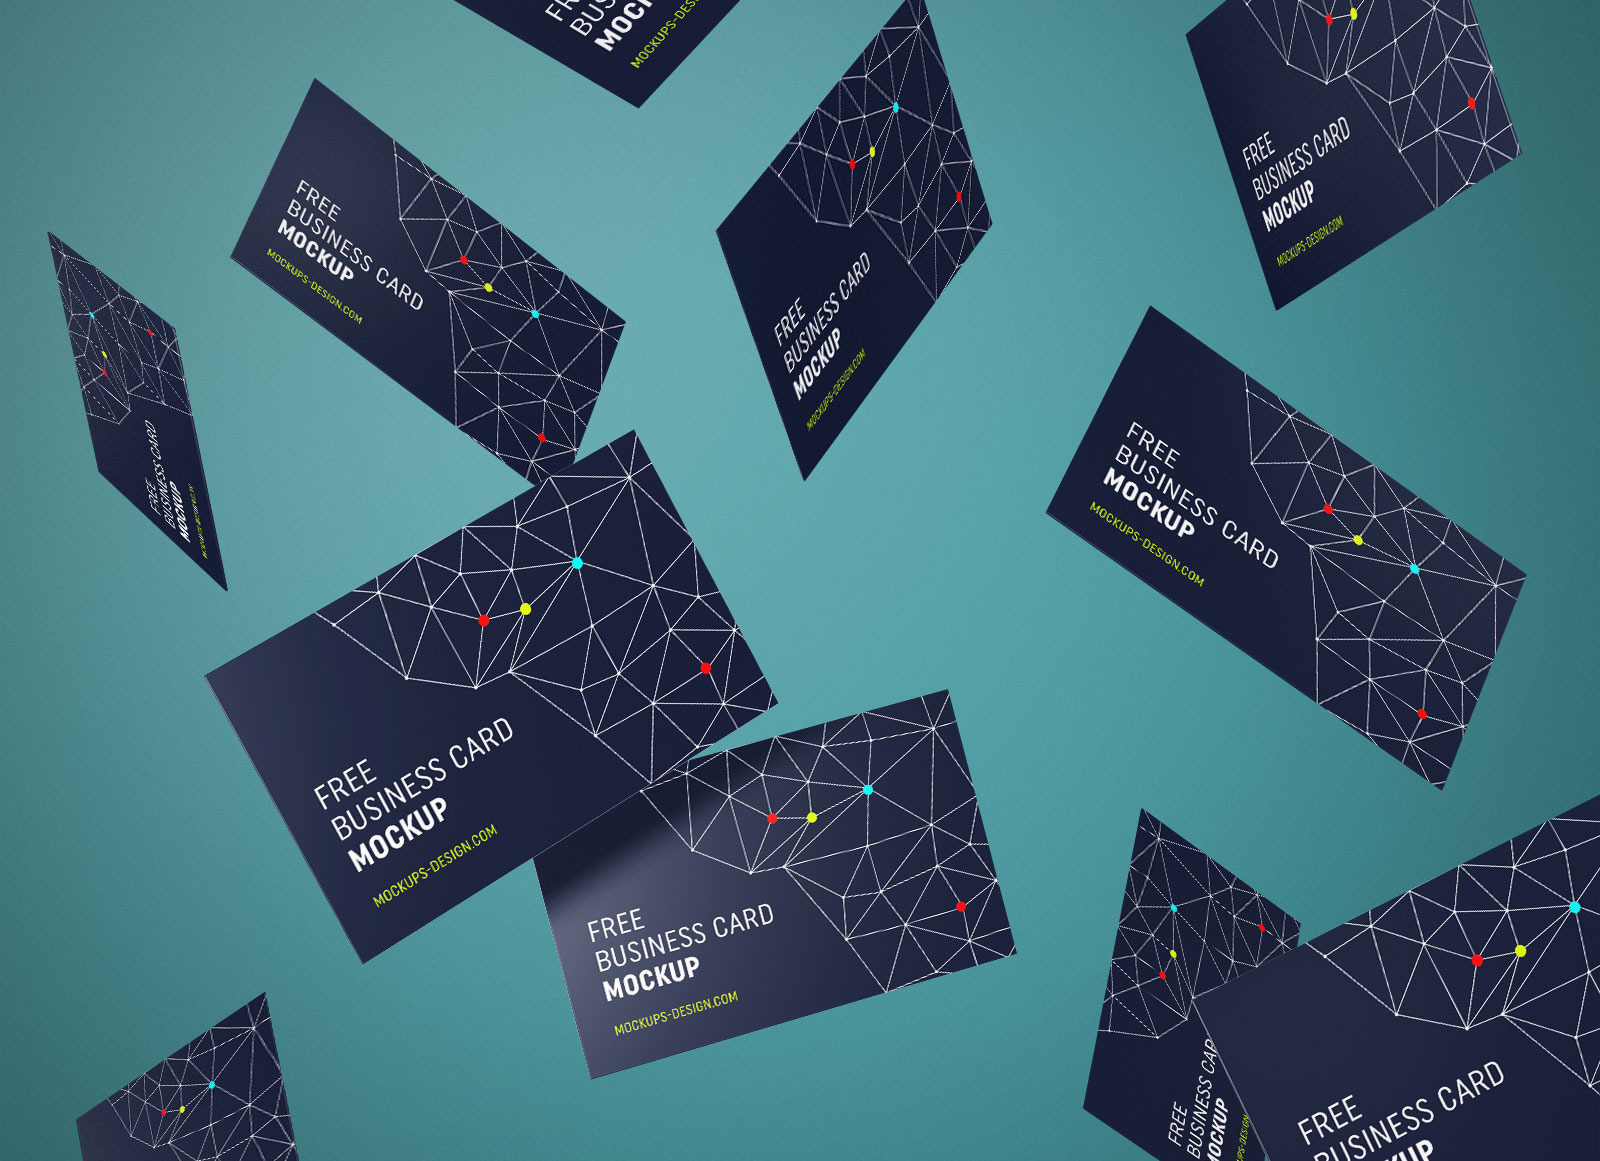 Free-Floating-Business_Cards_Mockup-PSD-2